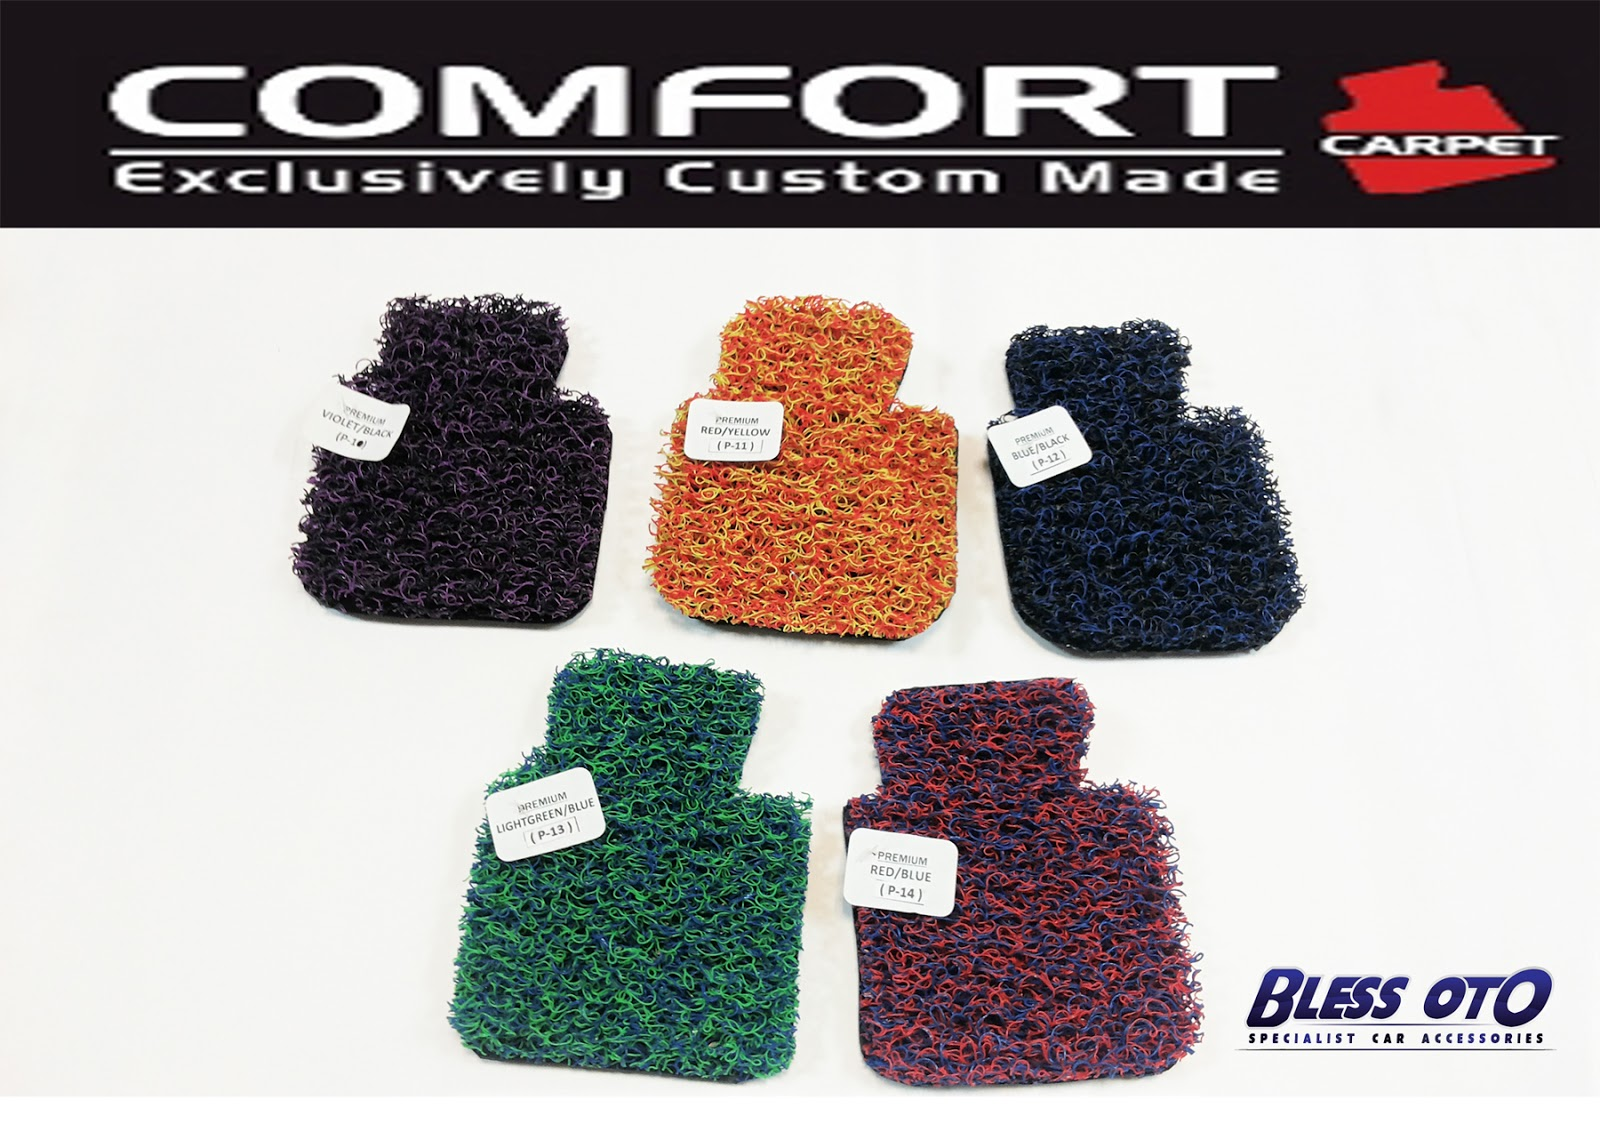 Bless Oto Spesialist Car Accessories Comport Carpet Karpet Nissan X Trail Premium 2cm Warna Baru Comfort